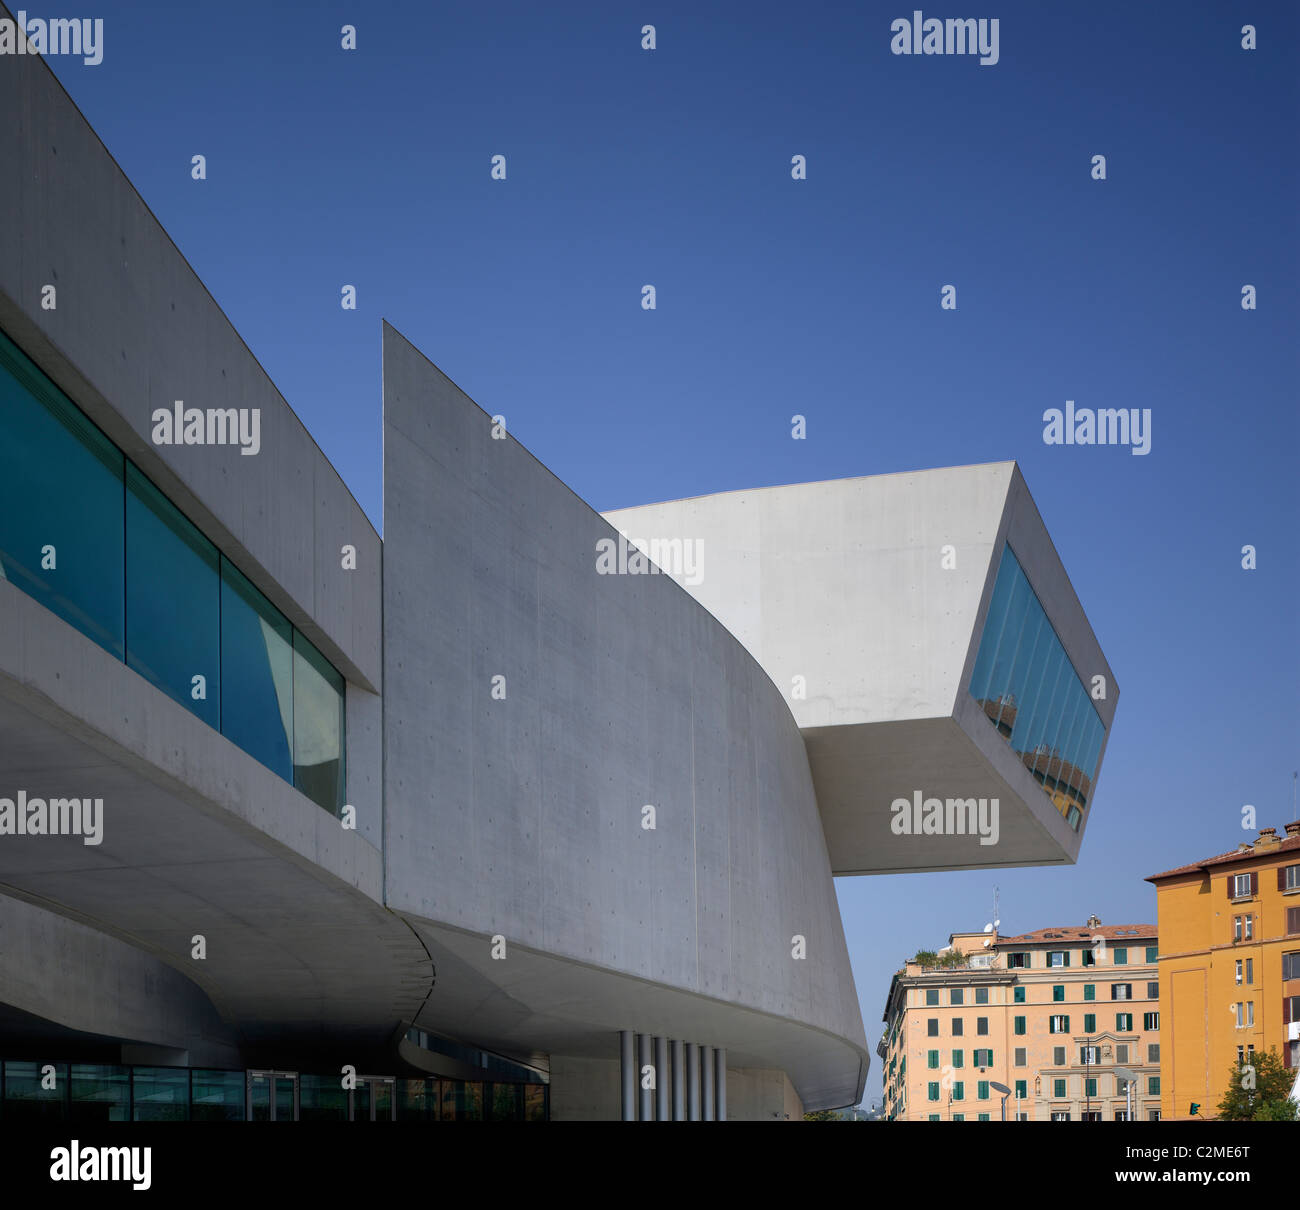 The MAXXI, National Museum of 21st Century Arts, Rome. - Stock Image